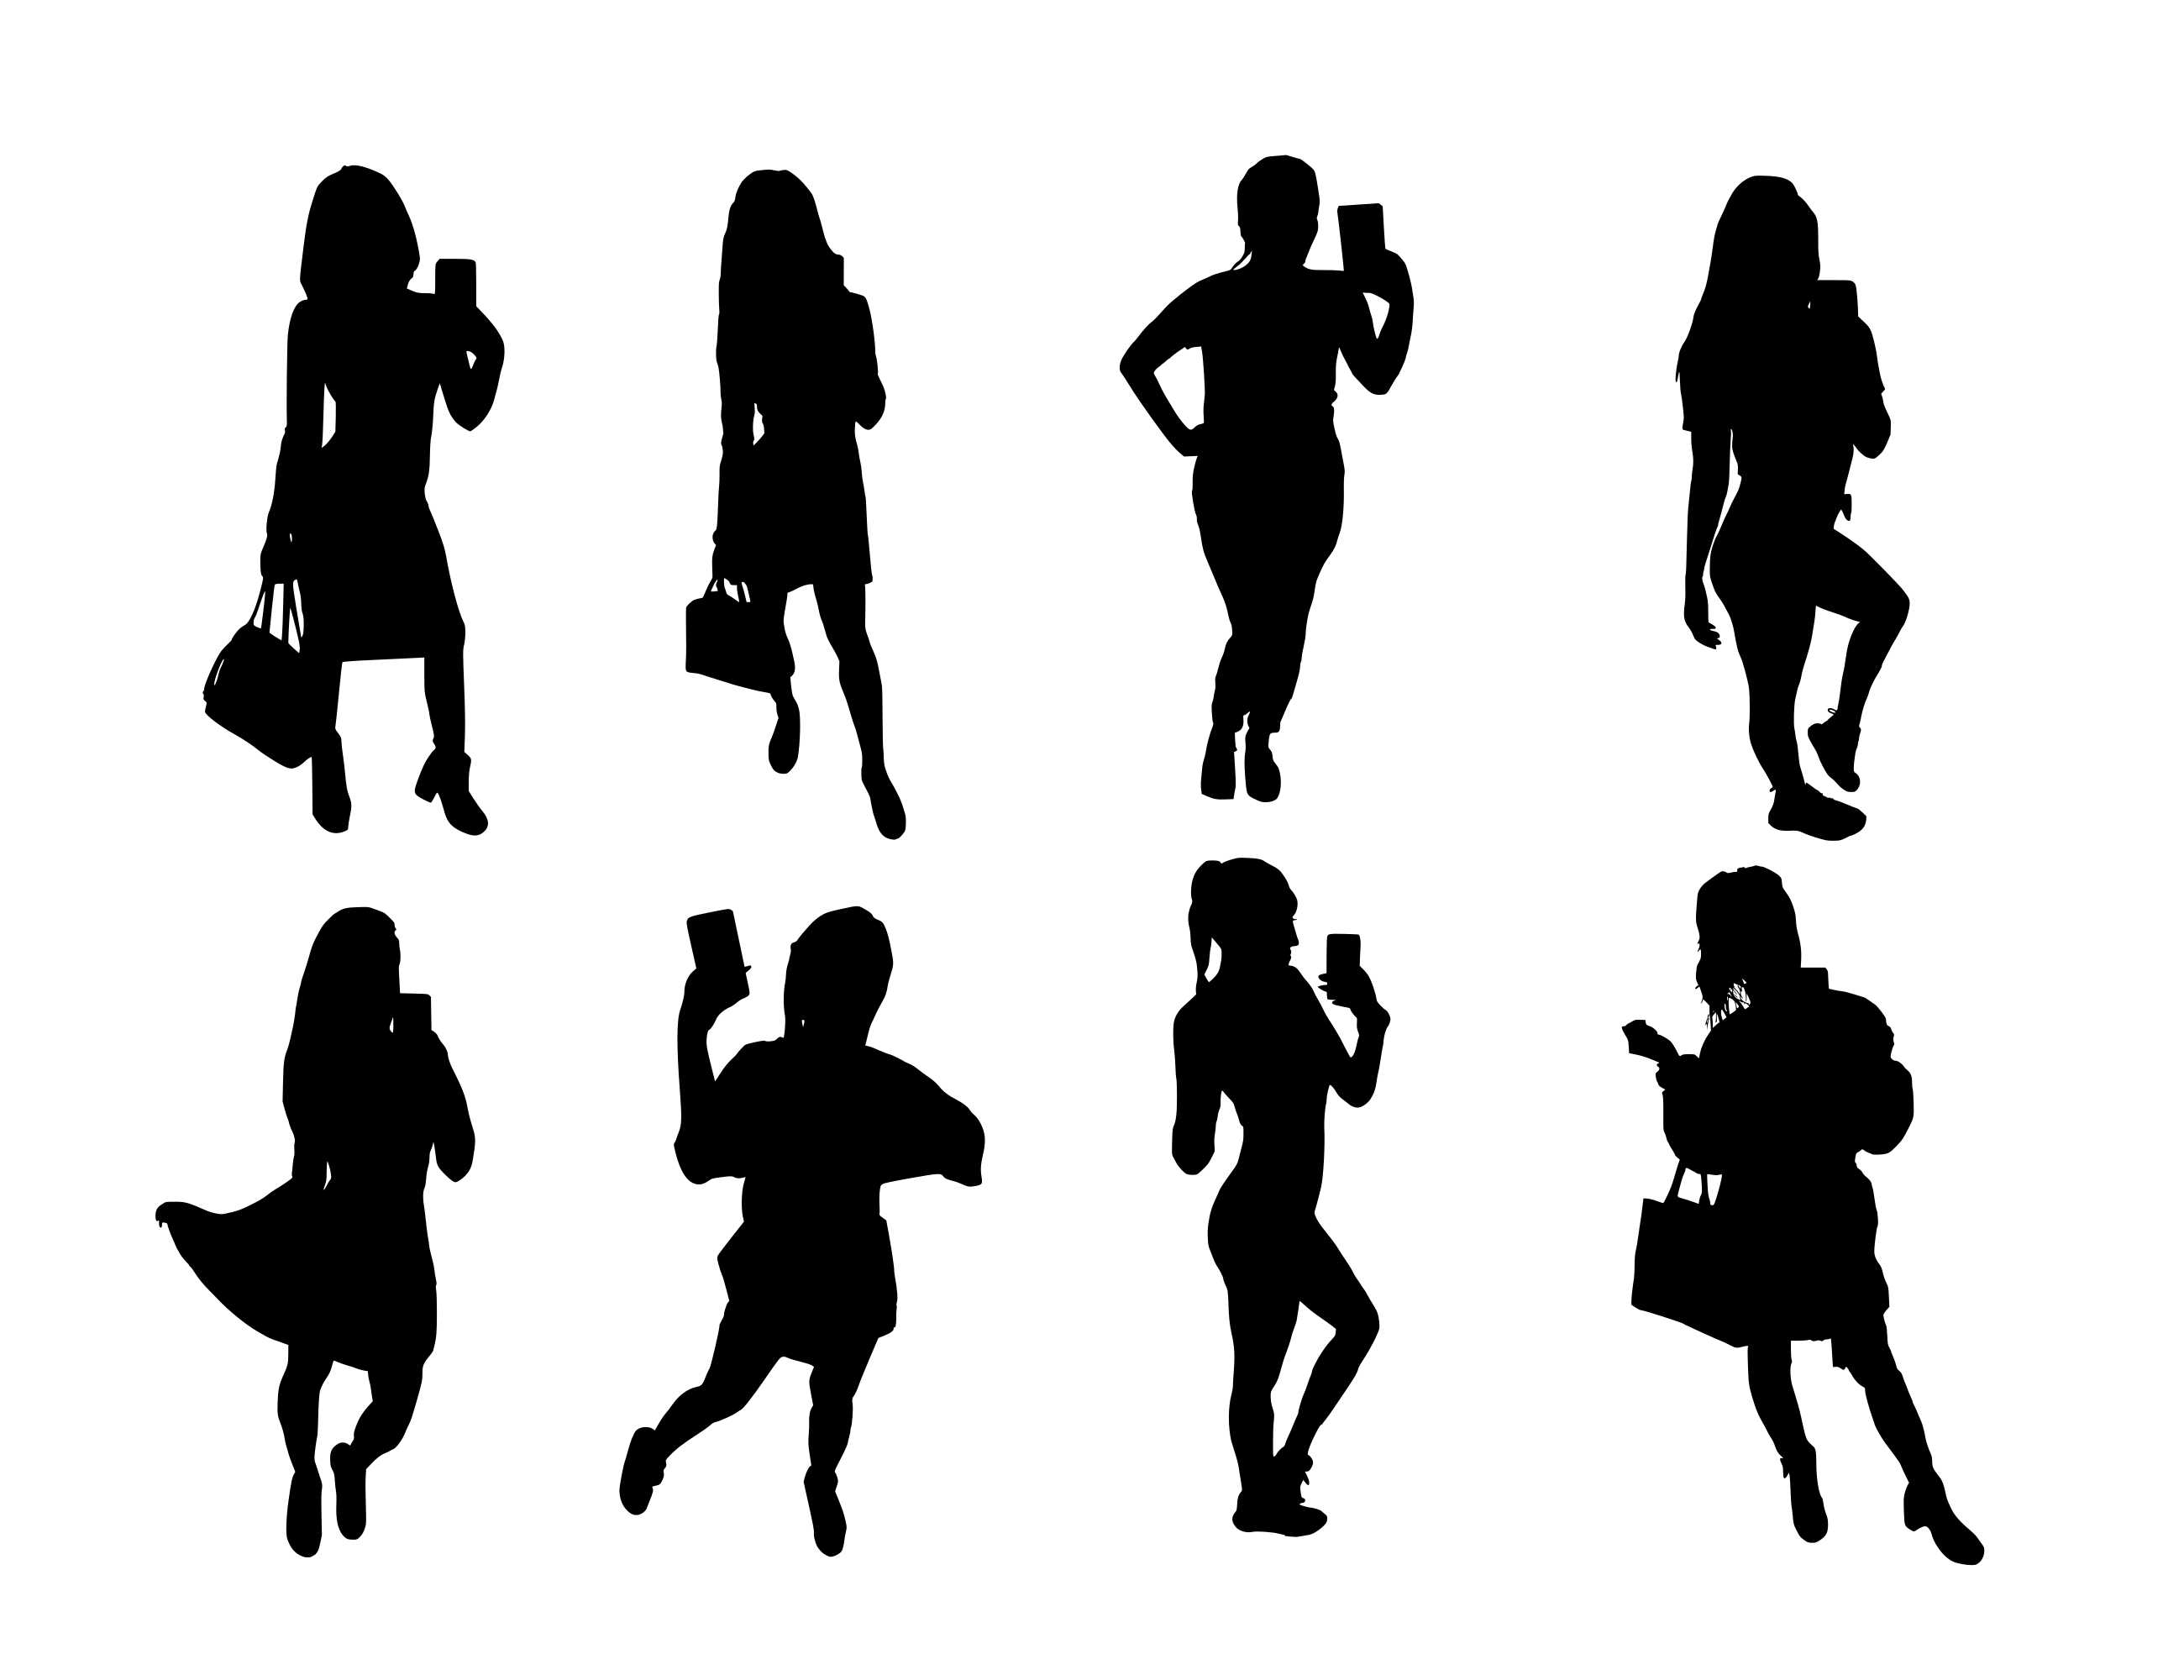 8-woman-taking-selfie-silhouette-cover.jpg